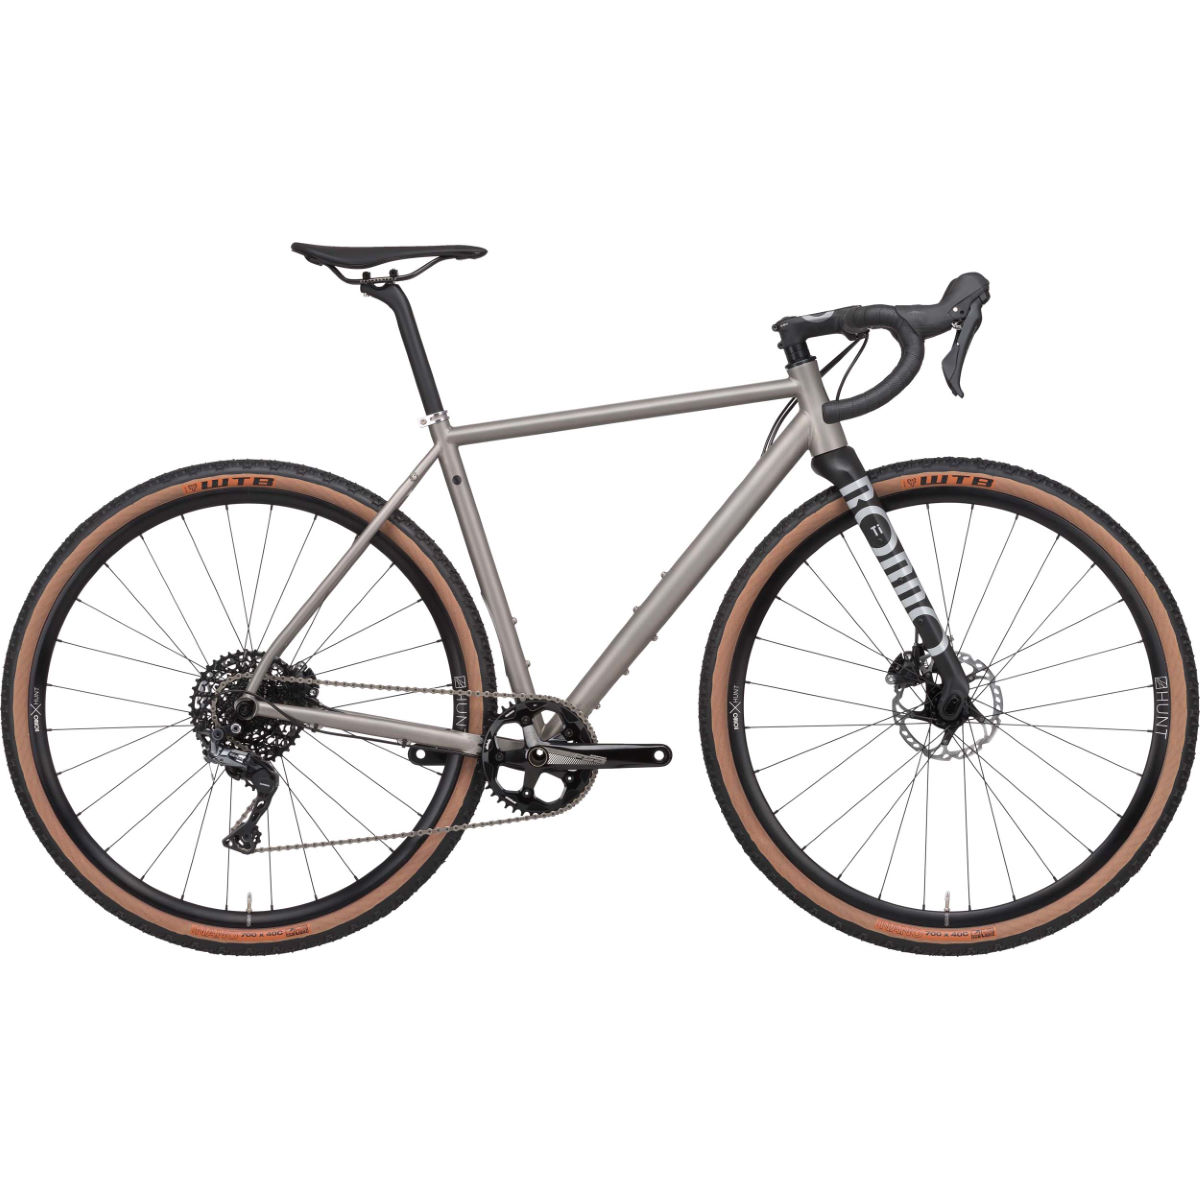 Rondo Rondo Ruut Ti Gravel Bike (2020)   Adventure Bikes